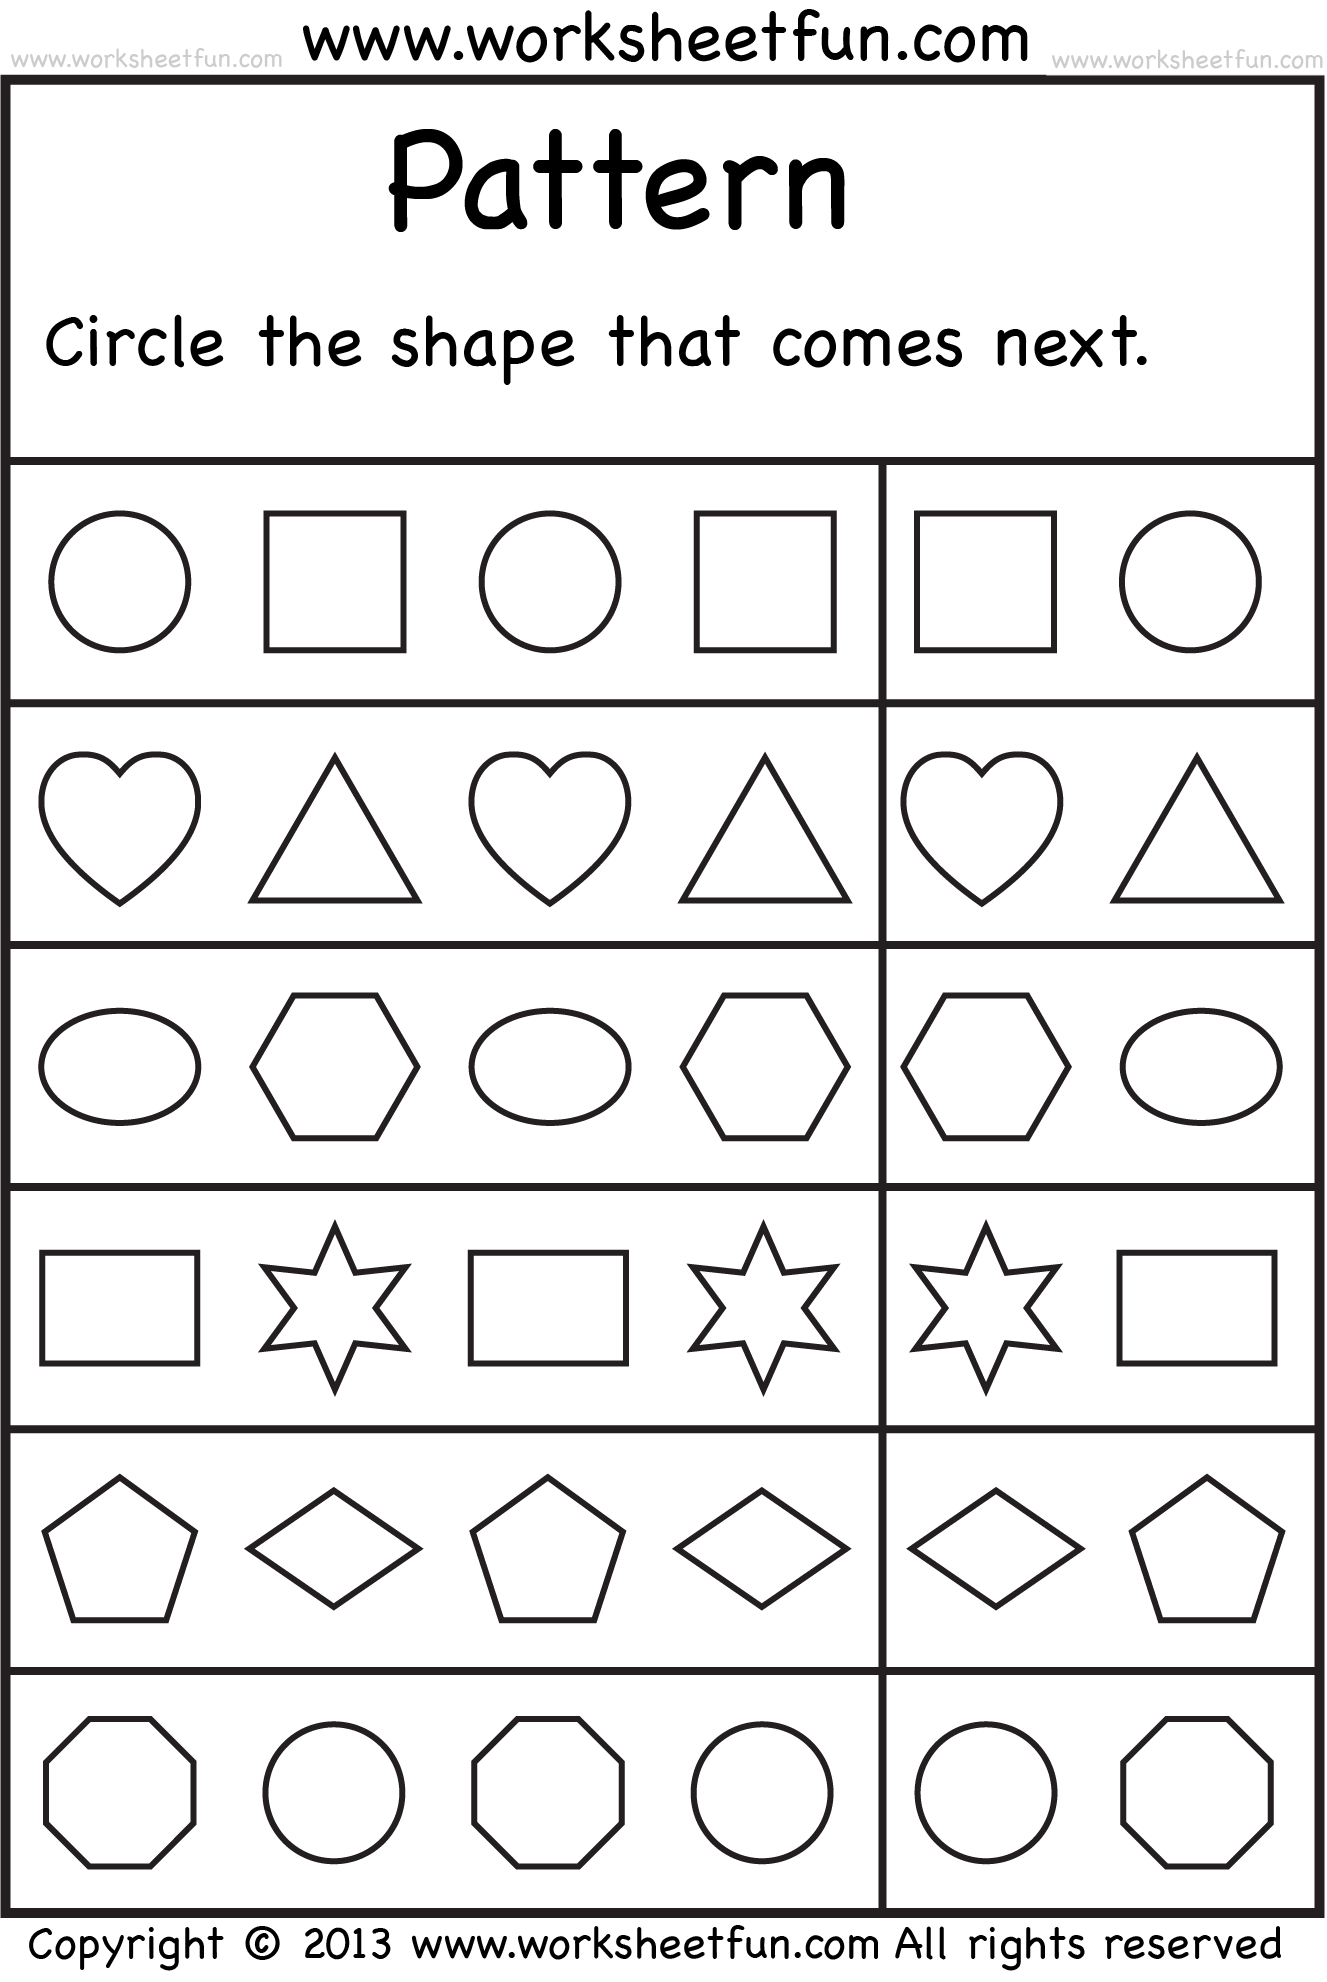 Worksheet Pattern Worksheets Kindergarten Printable 1000 images about kindergarten worksheets on pinterest and numbers